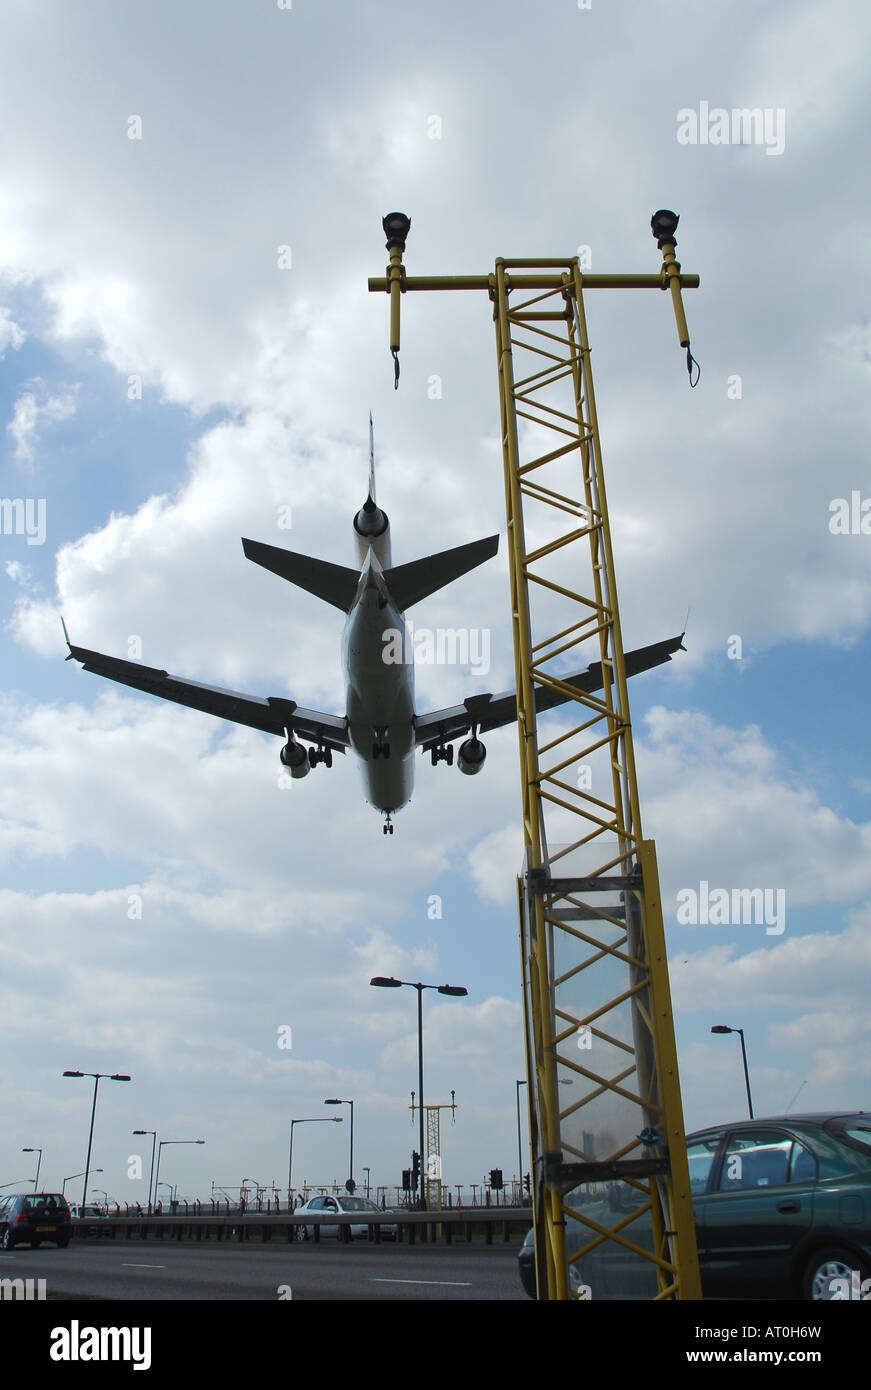 A MD-11 passes over the ILS just before landing at Heathrow airport London - Stock Image